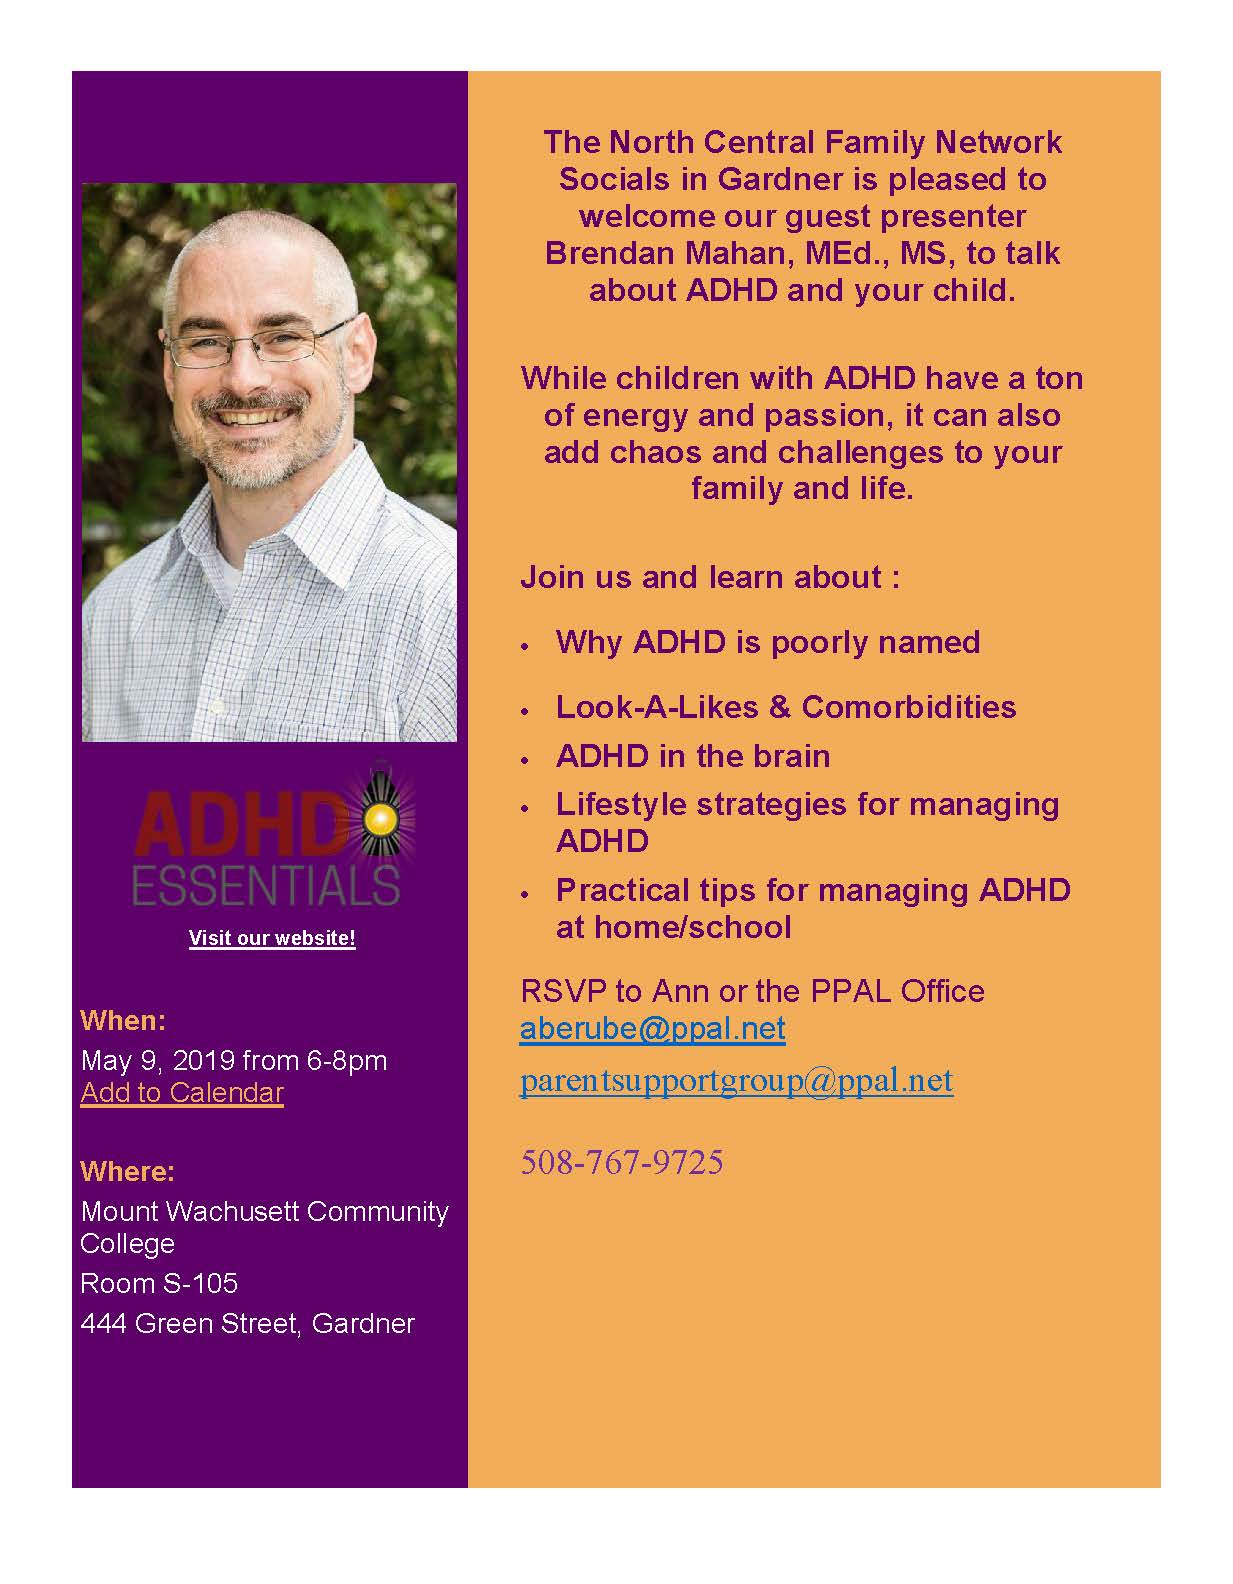 ADHD flyer 05.09.19_Page_1